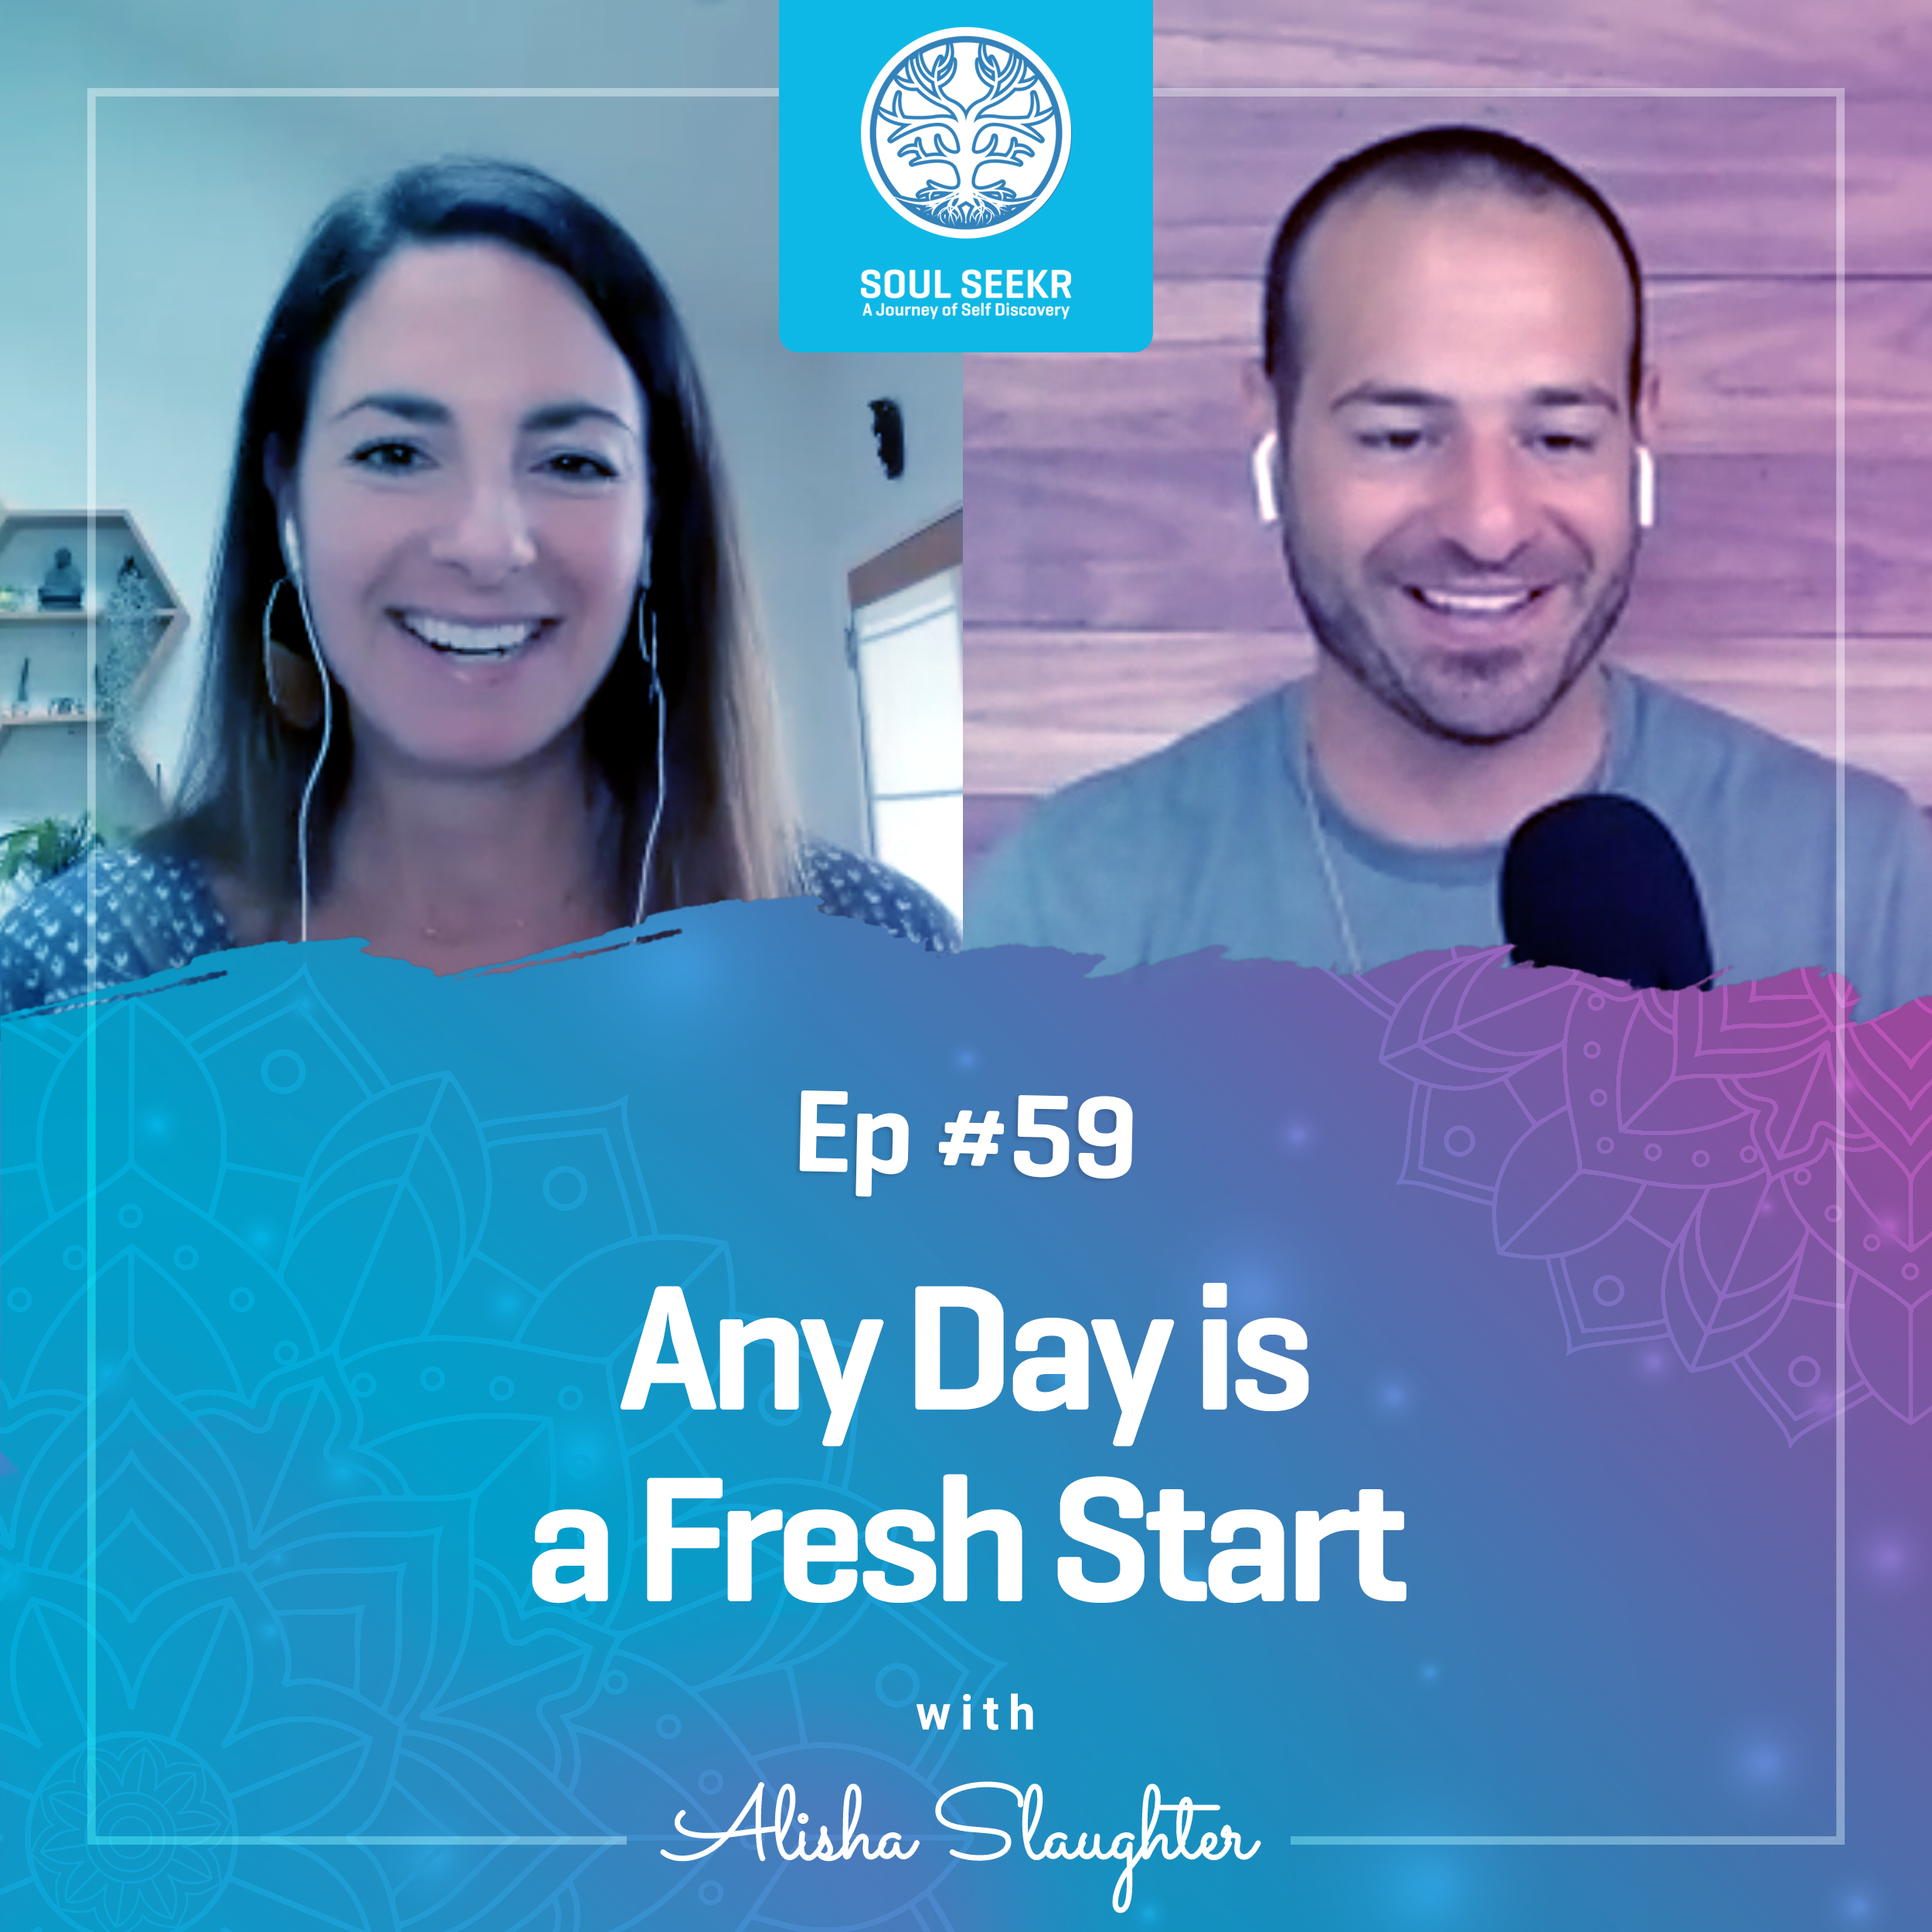 #59: Any Day is a Fresh Start with Alisha Slaughter